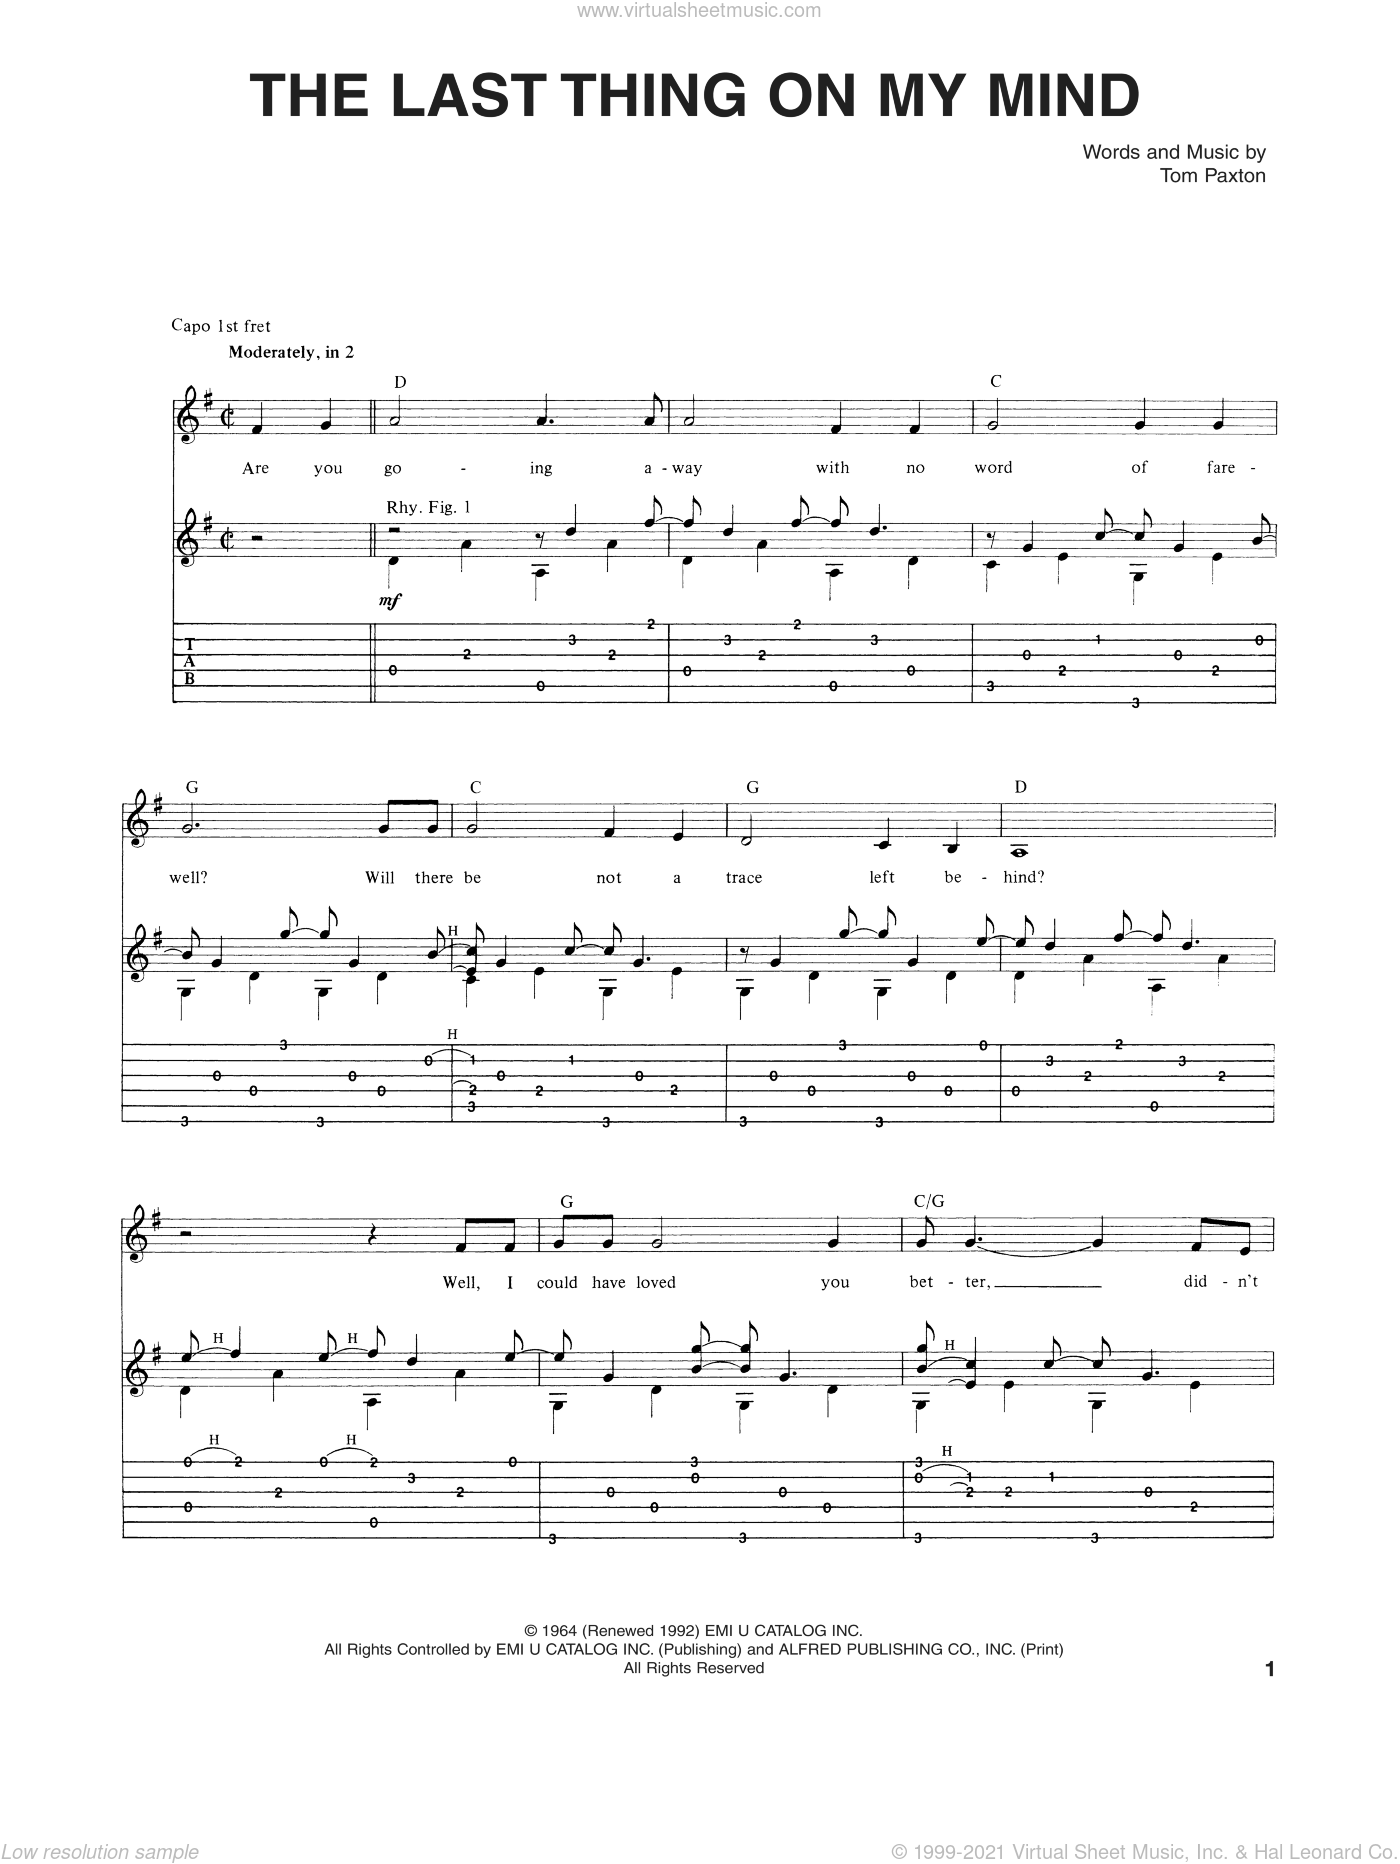 The Last Thing On My Mind sheet music for guitar (tablature) by Tom Paxton, intermediate skill level